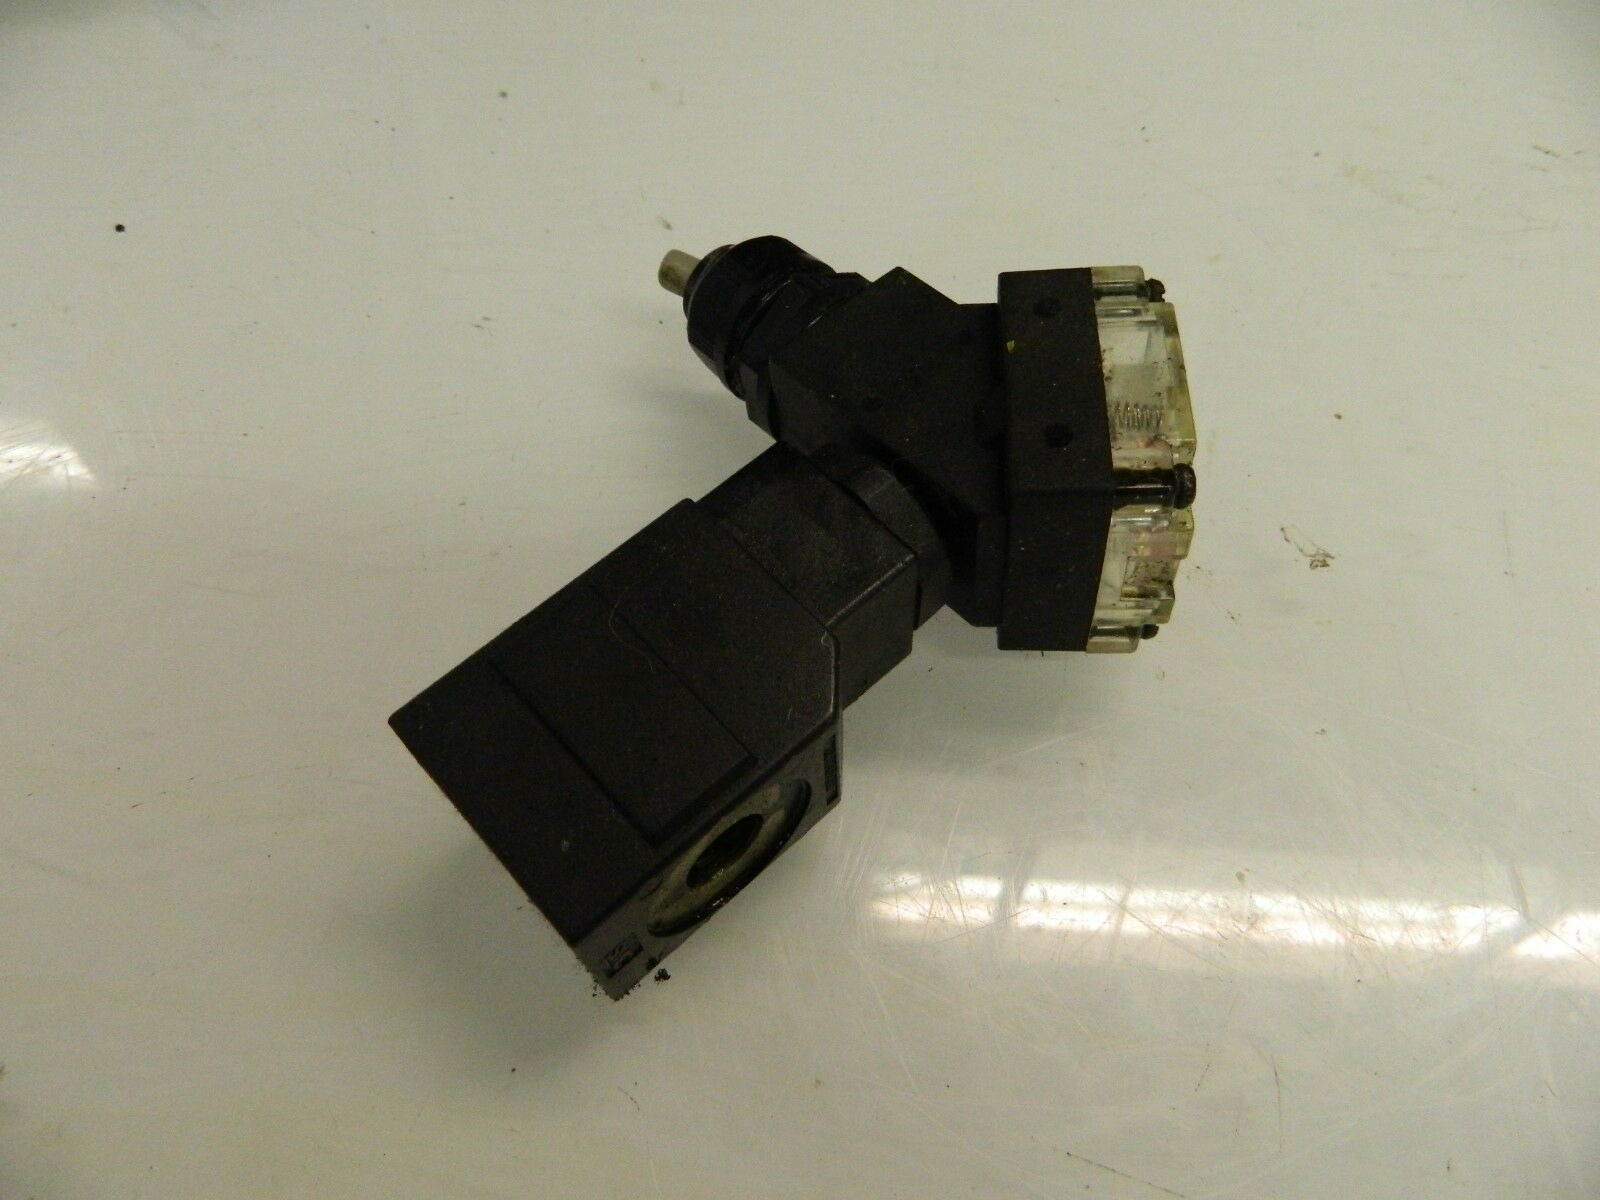 SMC 24 VDC Solenoid Coil w/ Connector Unit, 021-001C, Used, Warranty